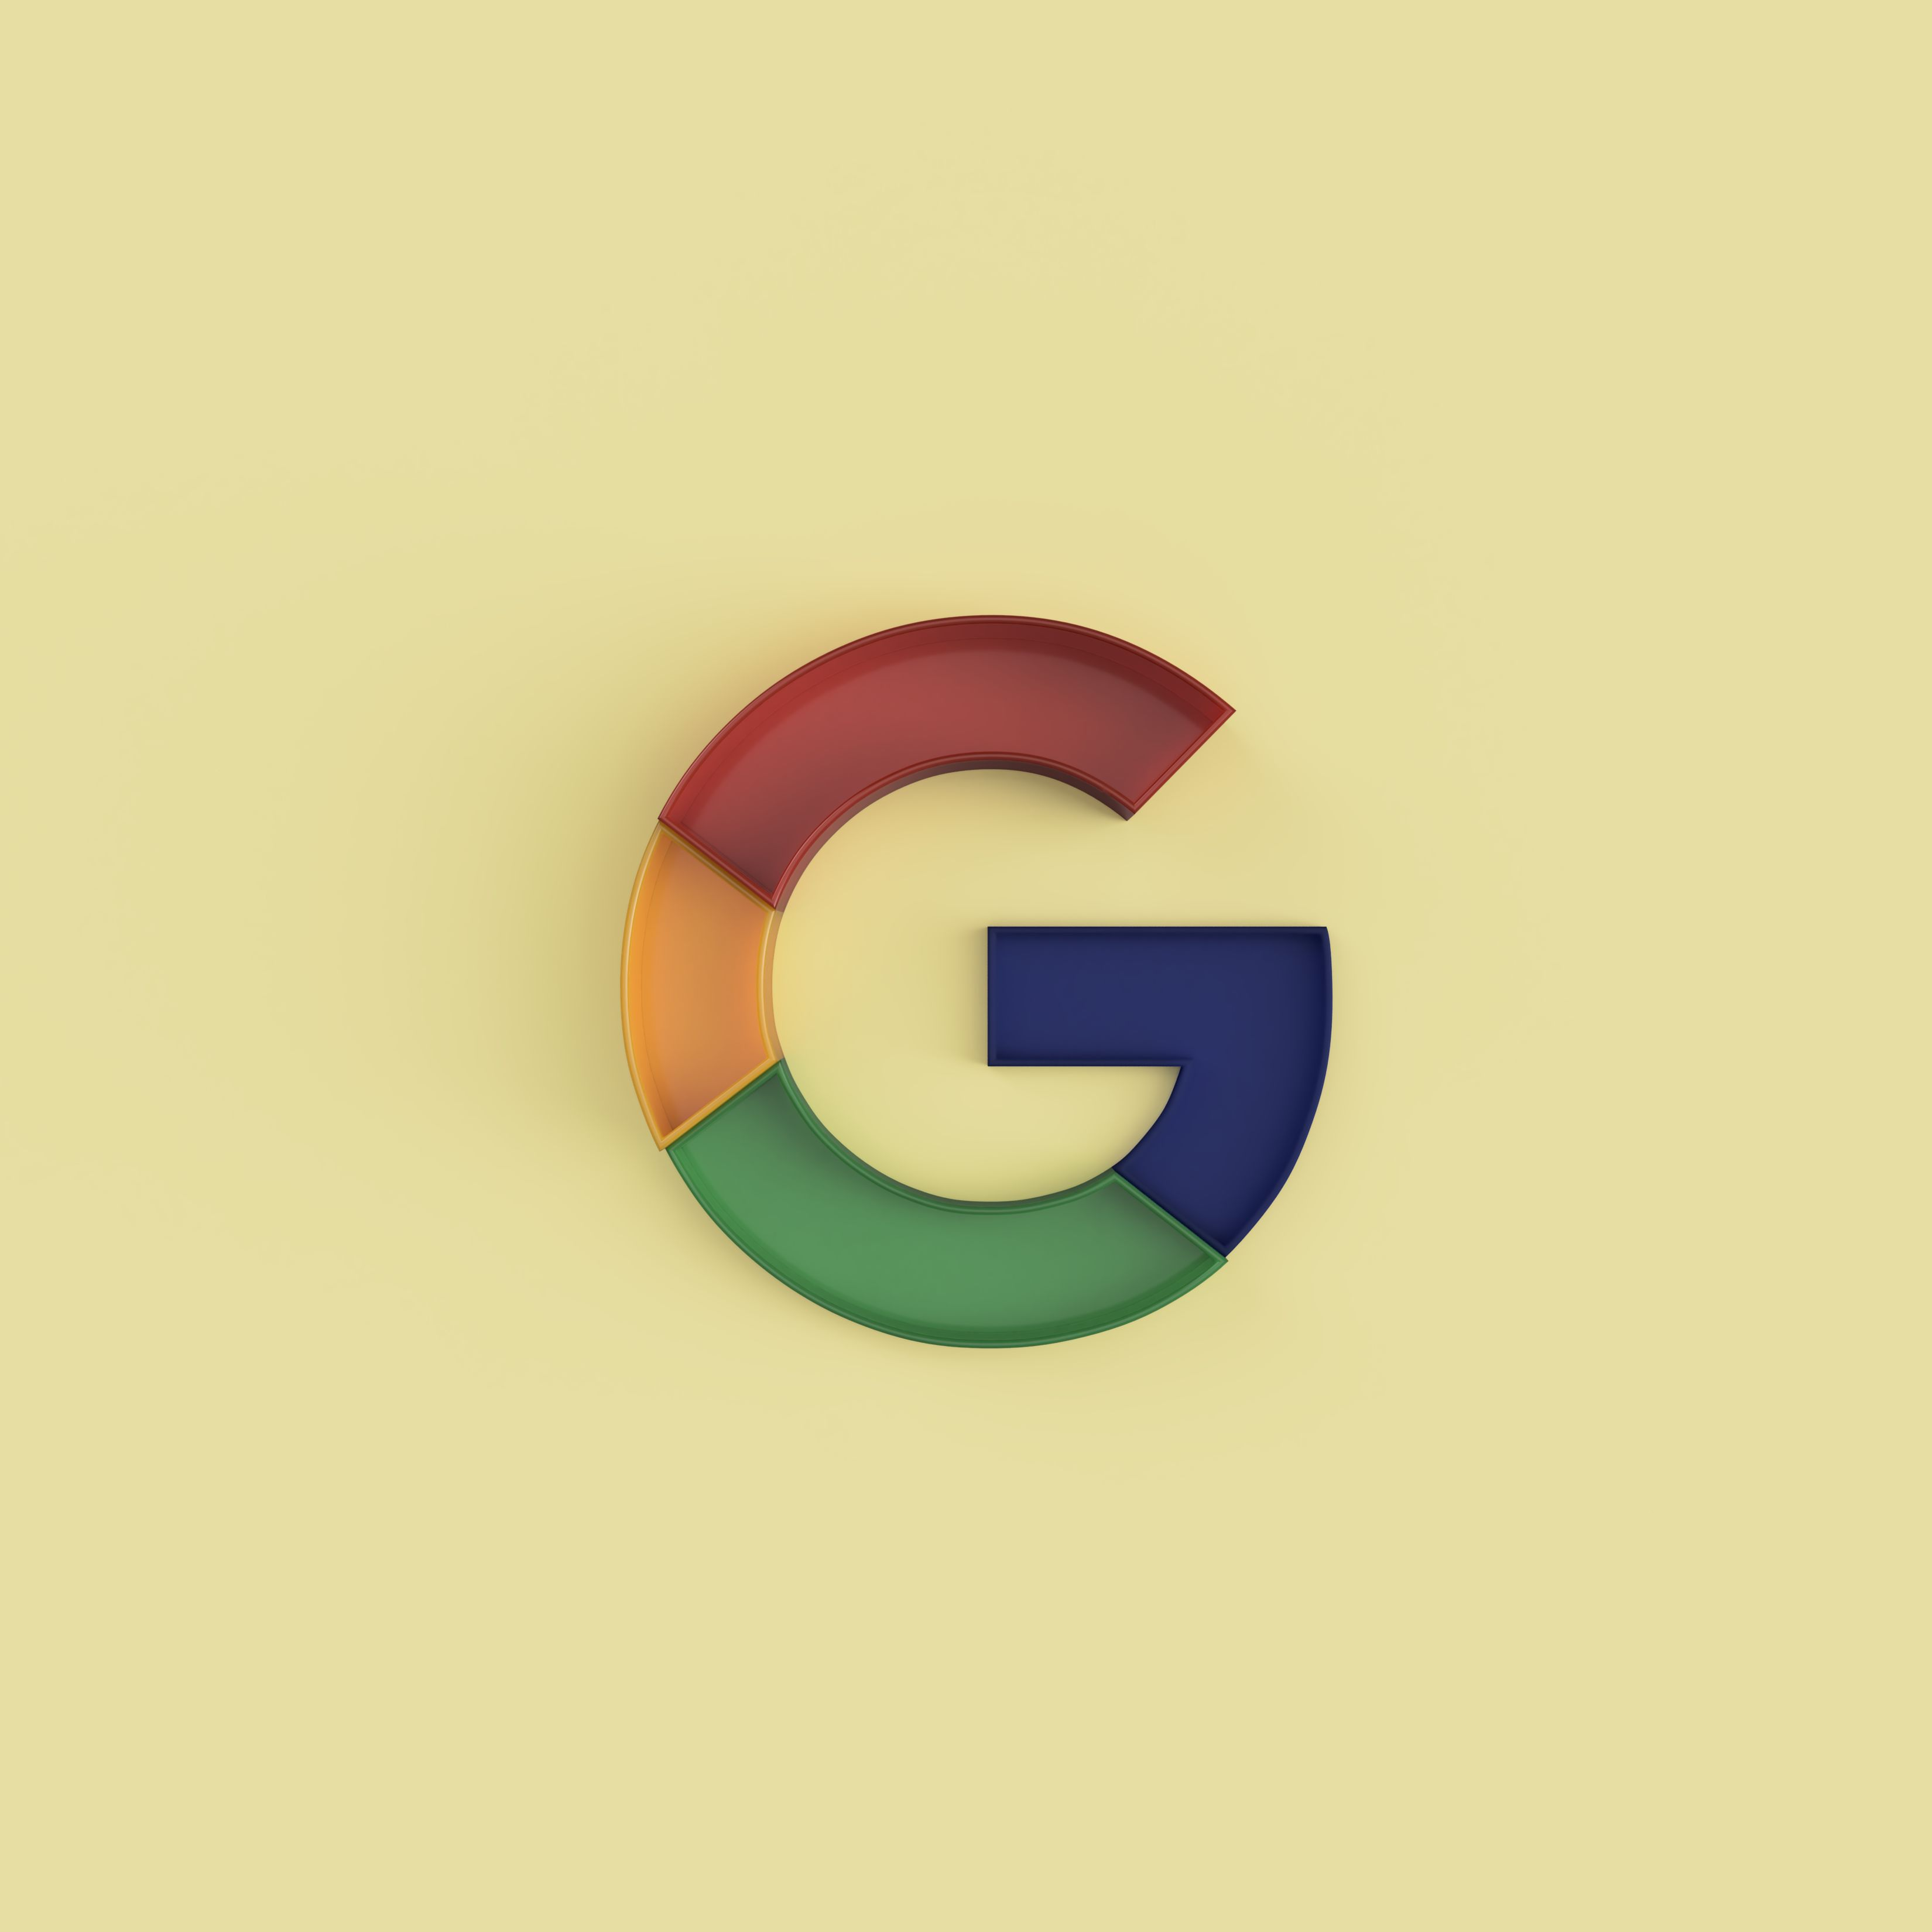 Google-3d-printing-2019-mar-28-10-31-49pm-000-customizedview44506962230-png-3500-3500